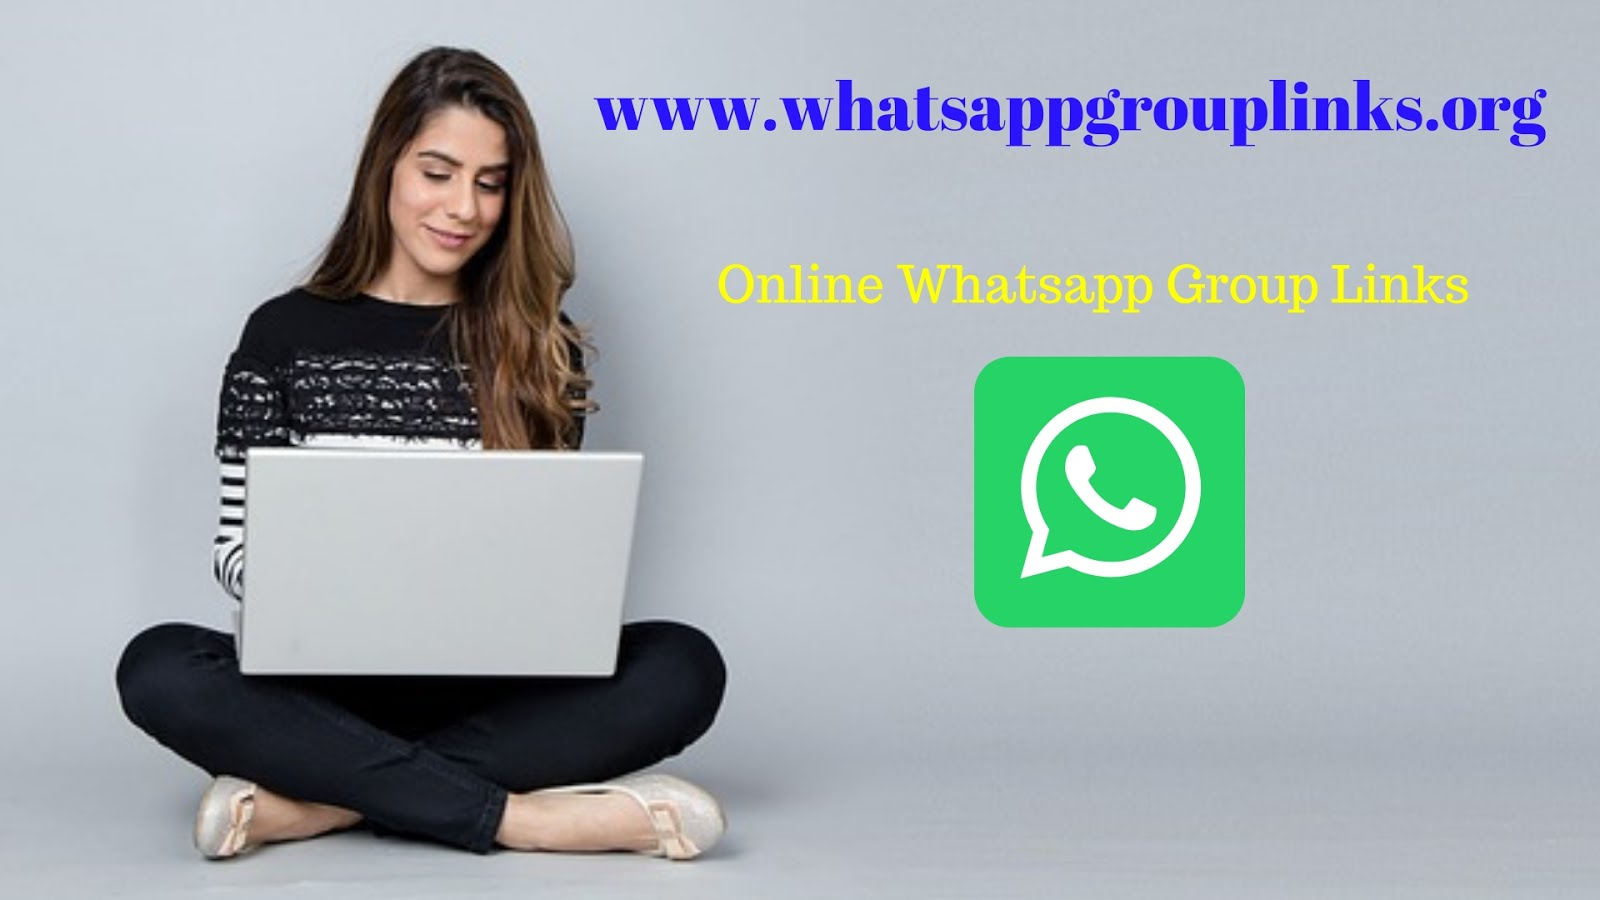 Online Whatsapp groups: Join Online Whatsapp Group Links List